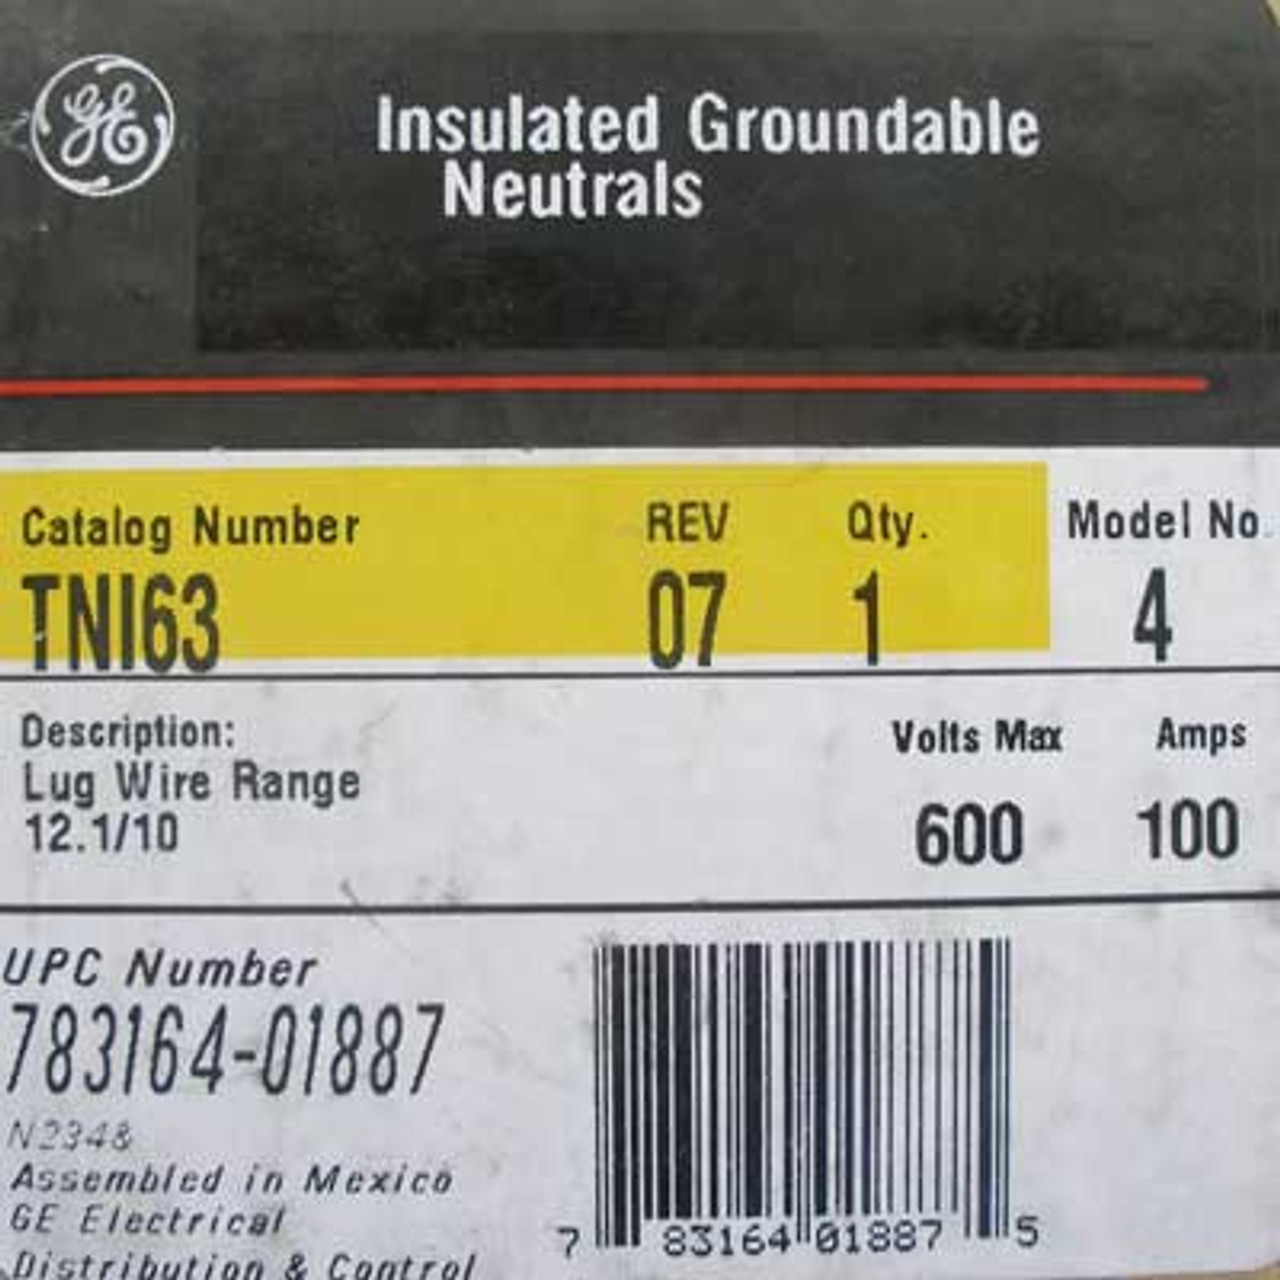 GE Insulated Groundable Neutrals TNI63 100 Amp 600V